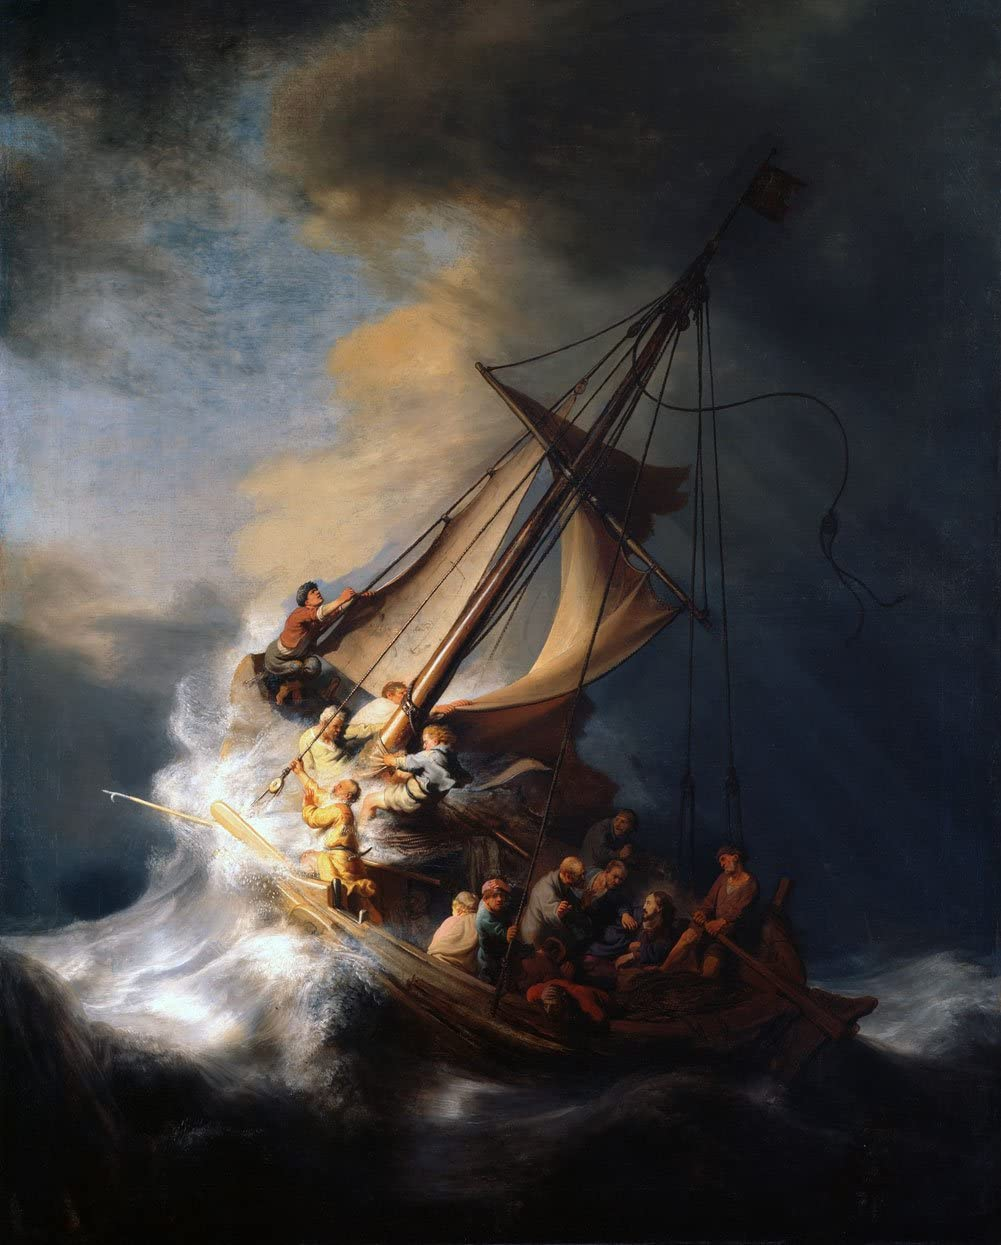 famous painting storm sea galilee by rembrandt